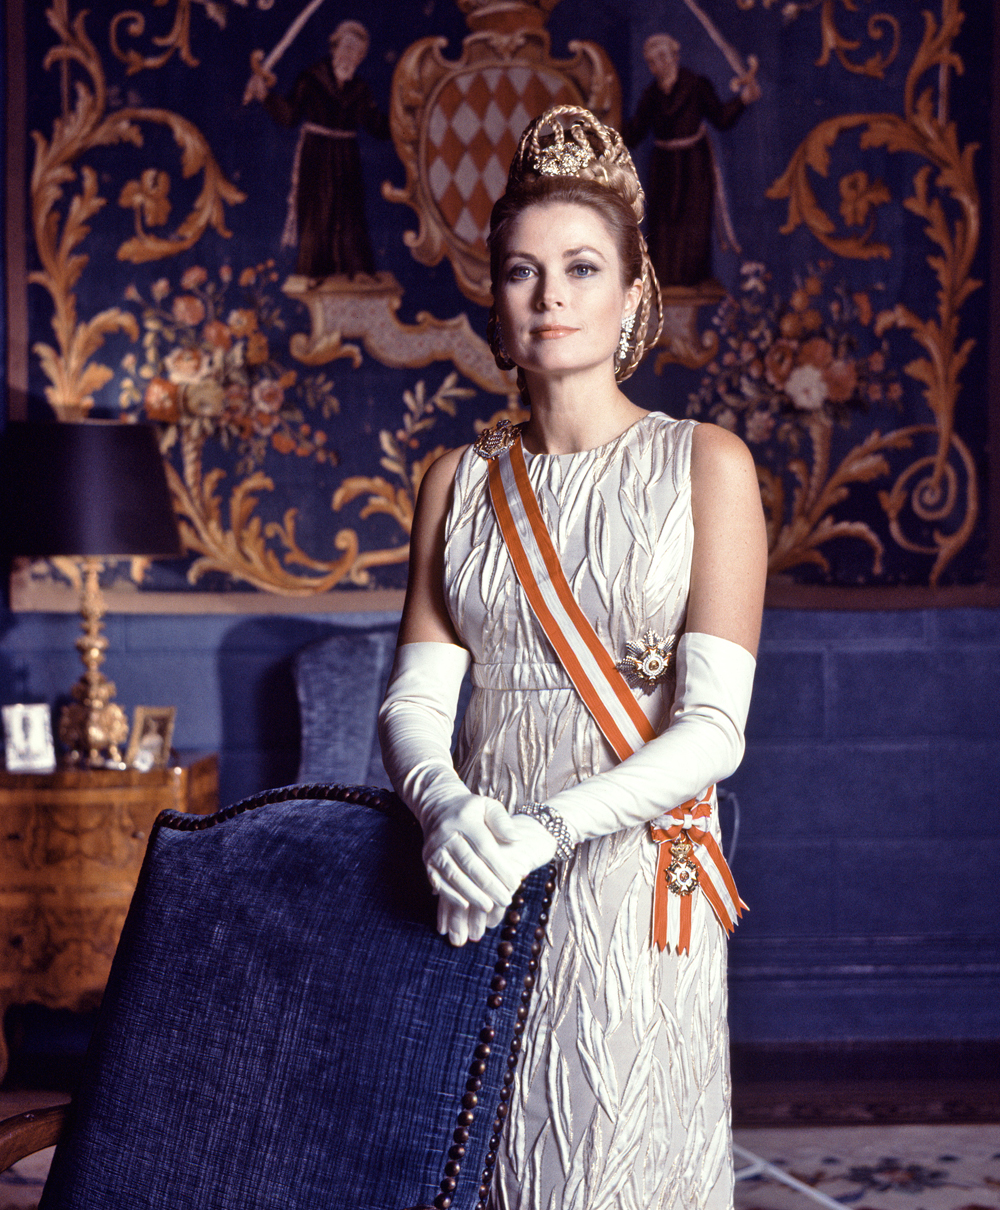 Portrait of Princess Grace on her 10th wedding anniversary, Monaco